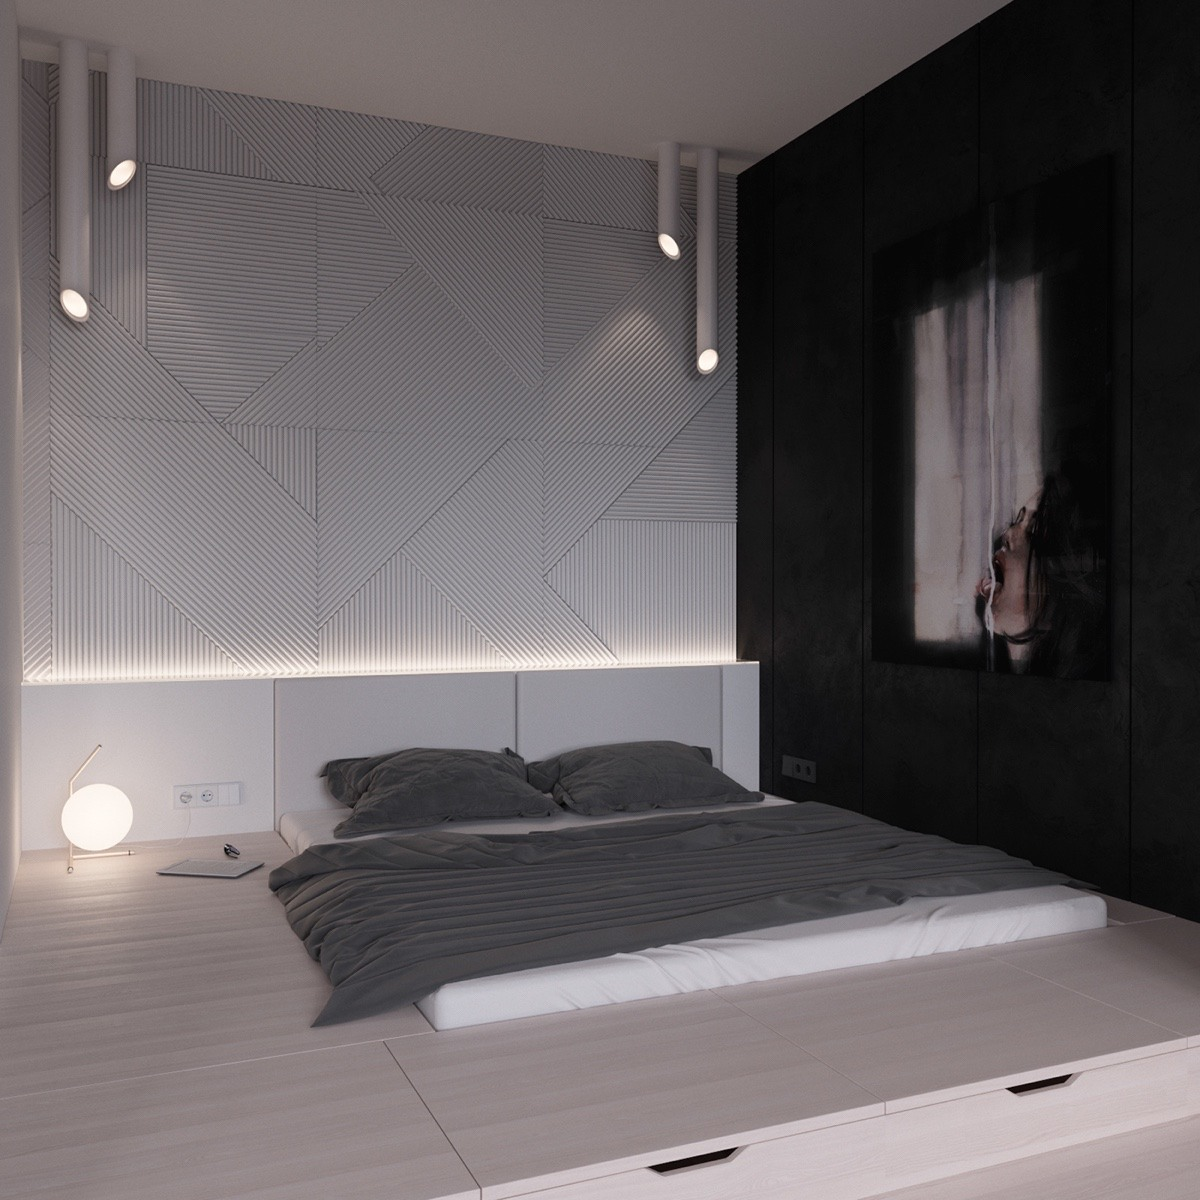 40 Minimalist Bedroom Ideas: 40 Serenely Minimalist Bedrooms To Help You Embrace Simple